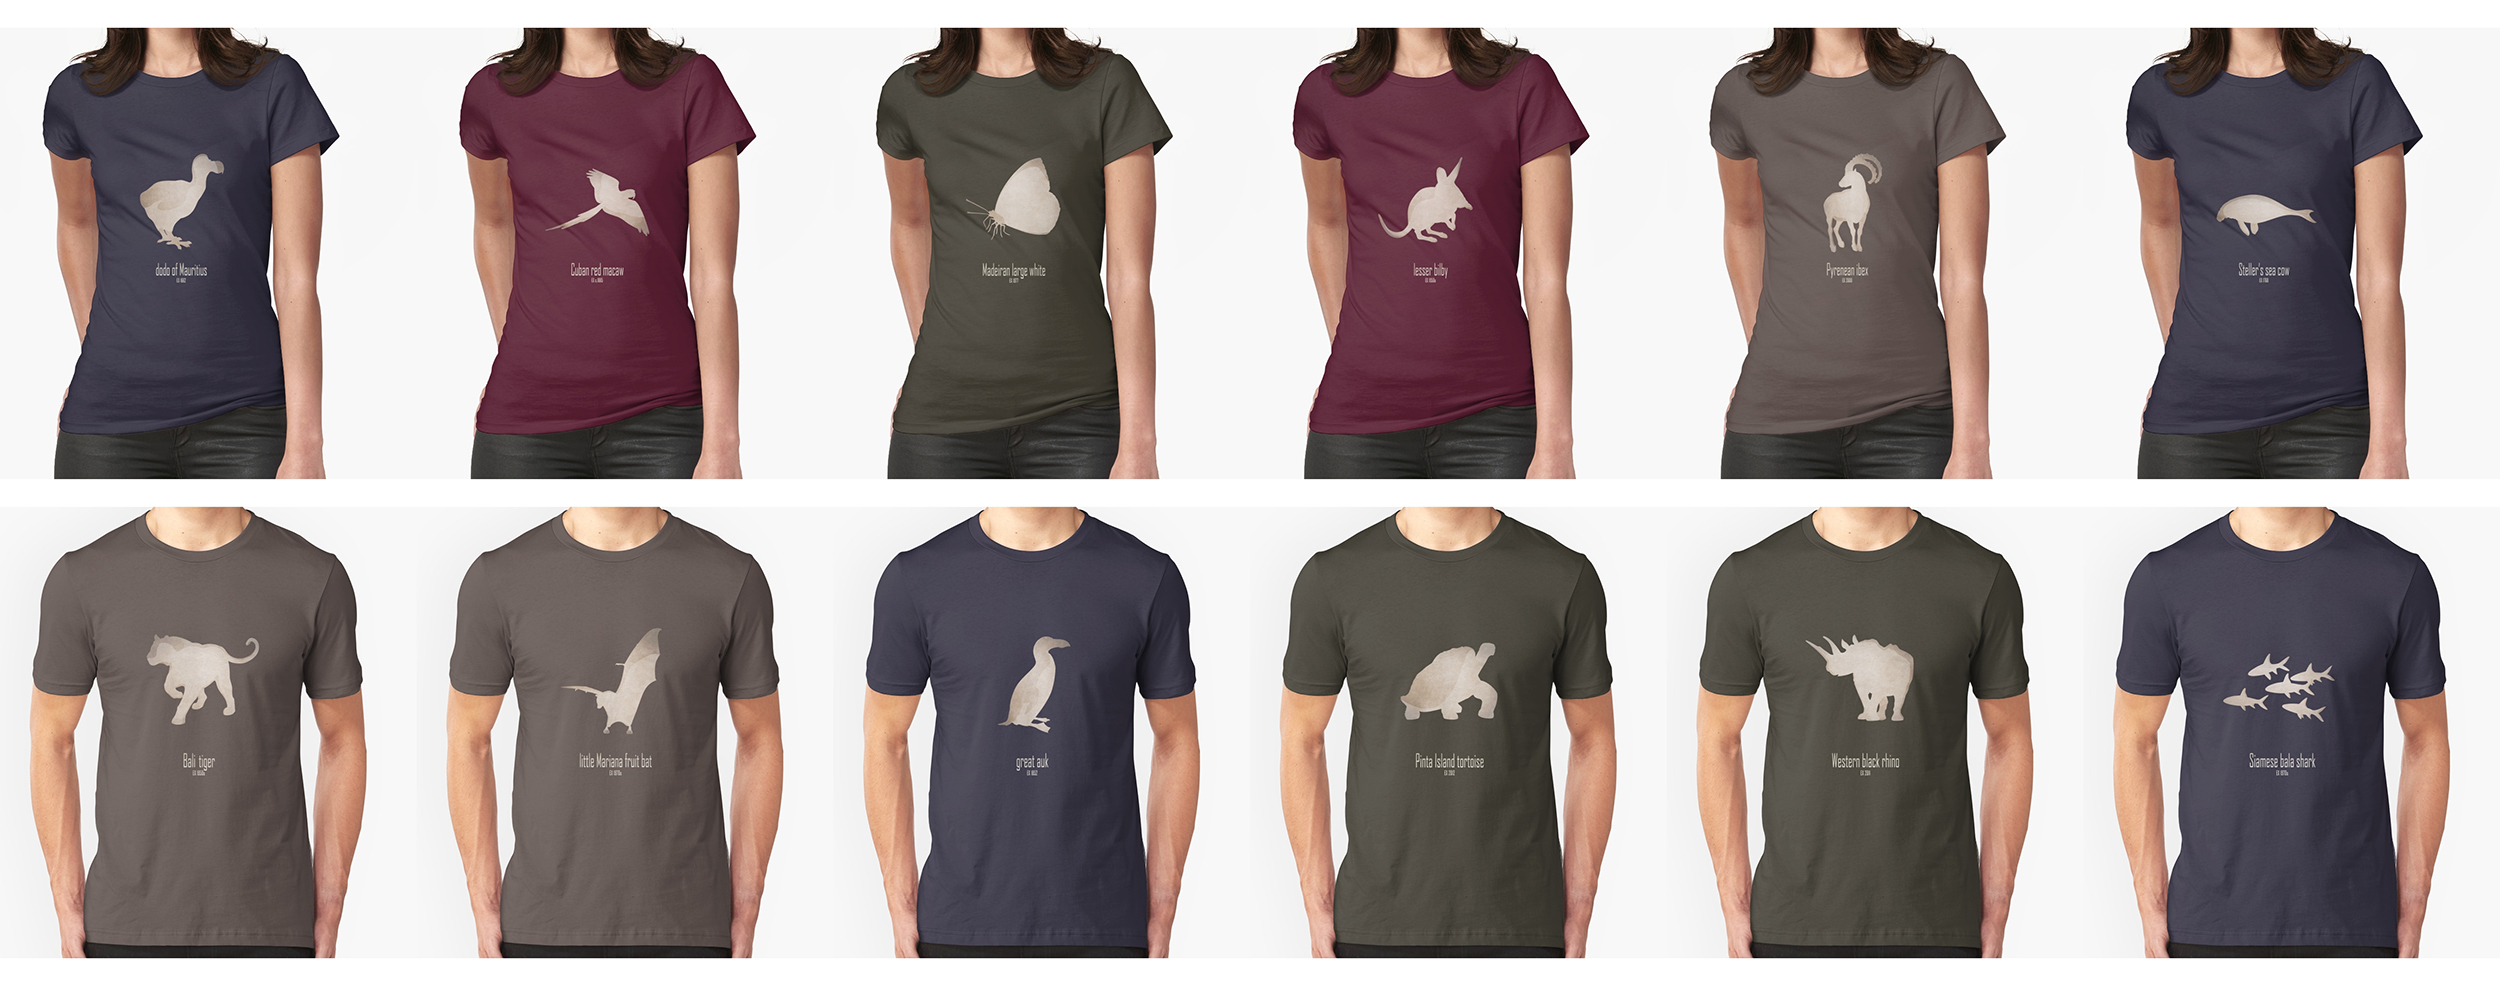 t-shirt men mens womens woman man babies kids boys girls clothes apparel extinct animals names list species recently extinct 20th century 21st century IUCN red list wildlife conservation efforts save wildlife planet earth logo biodiversity environmentalist emblematic symbol